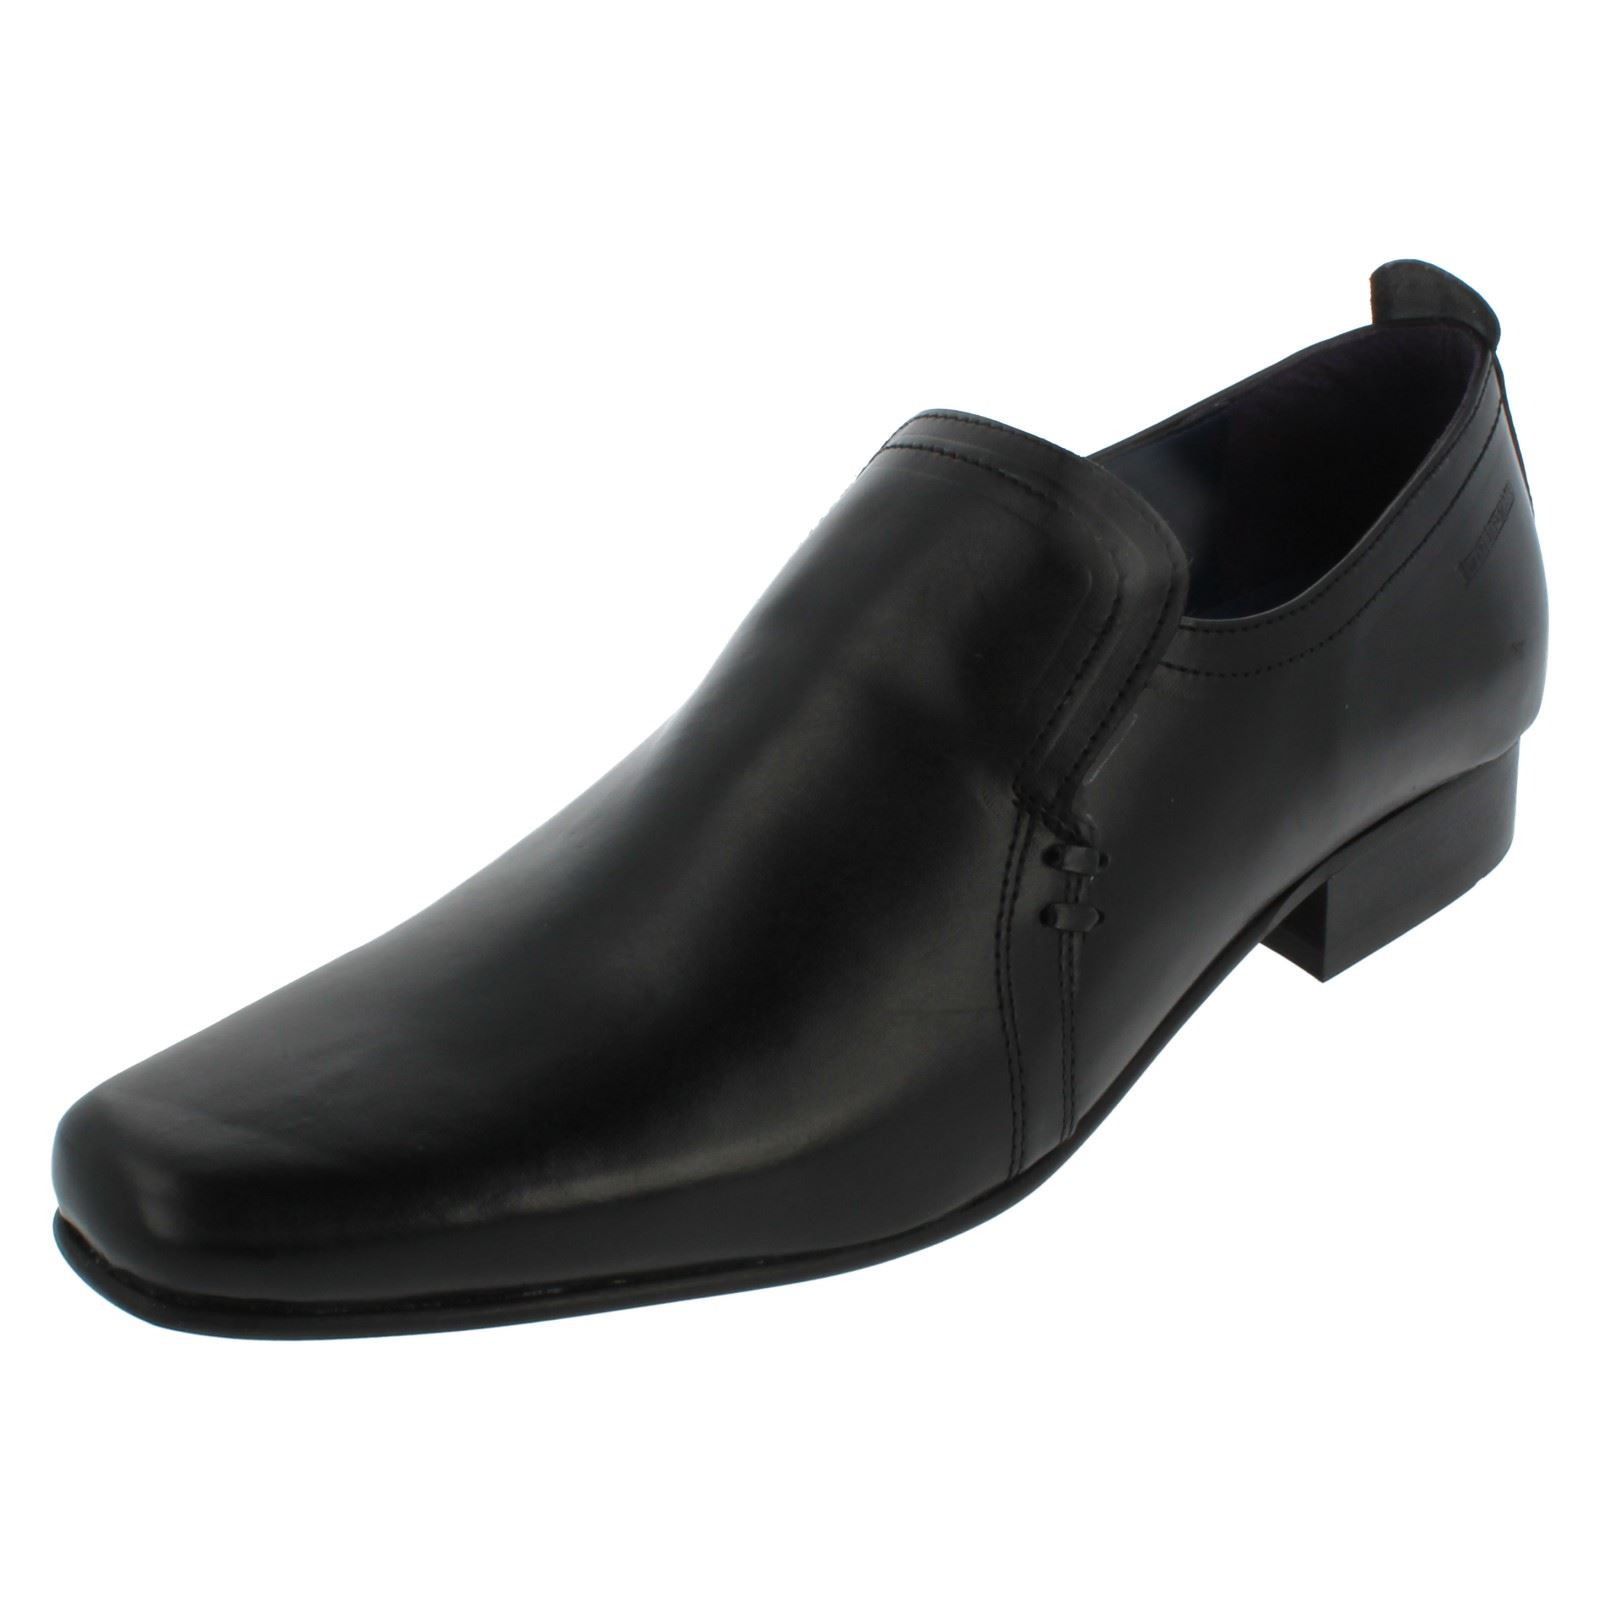 Para hombre Giovanni negro Slip On Smart formal trabajo cómodo zapatos, color Negro, talla 45